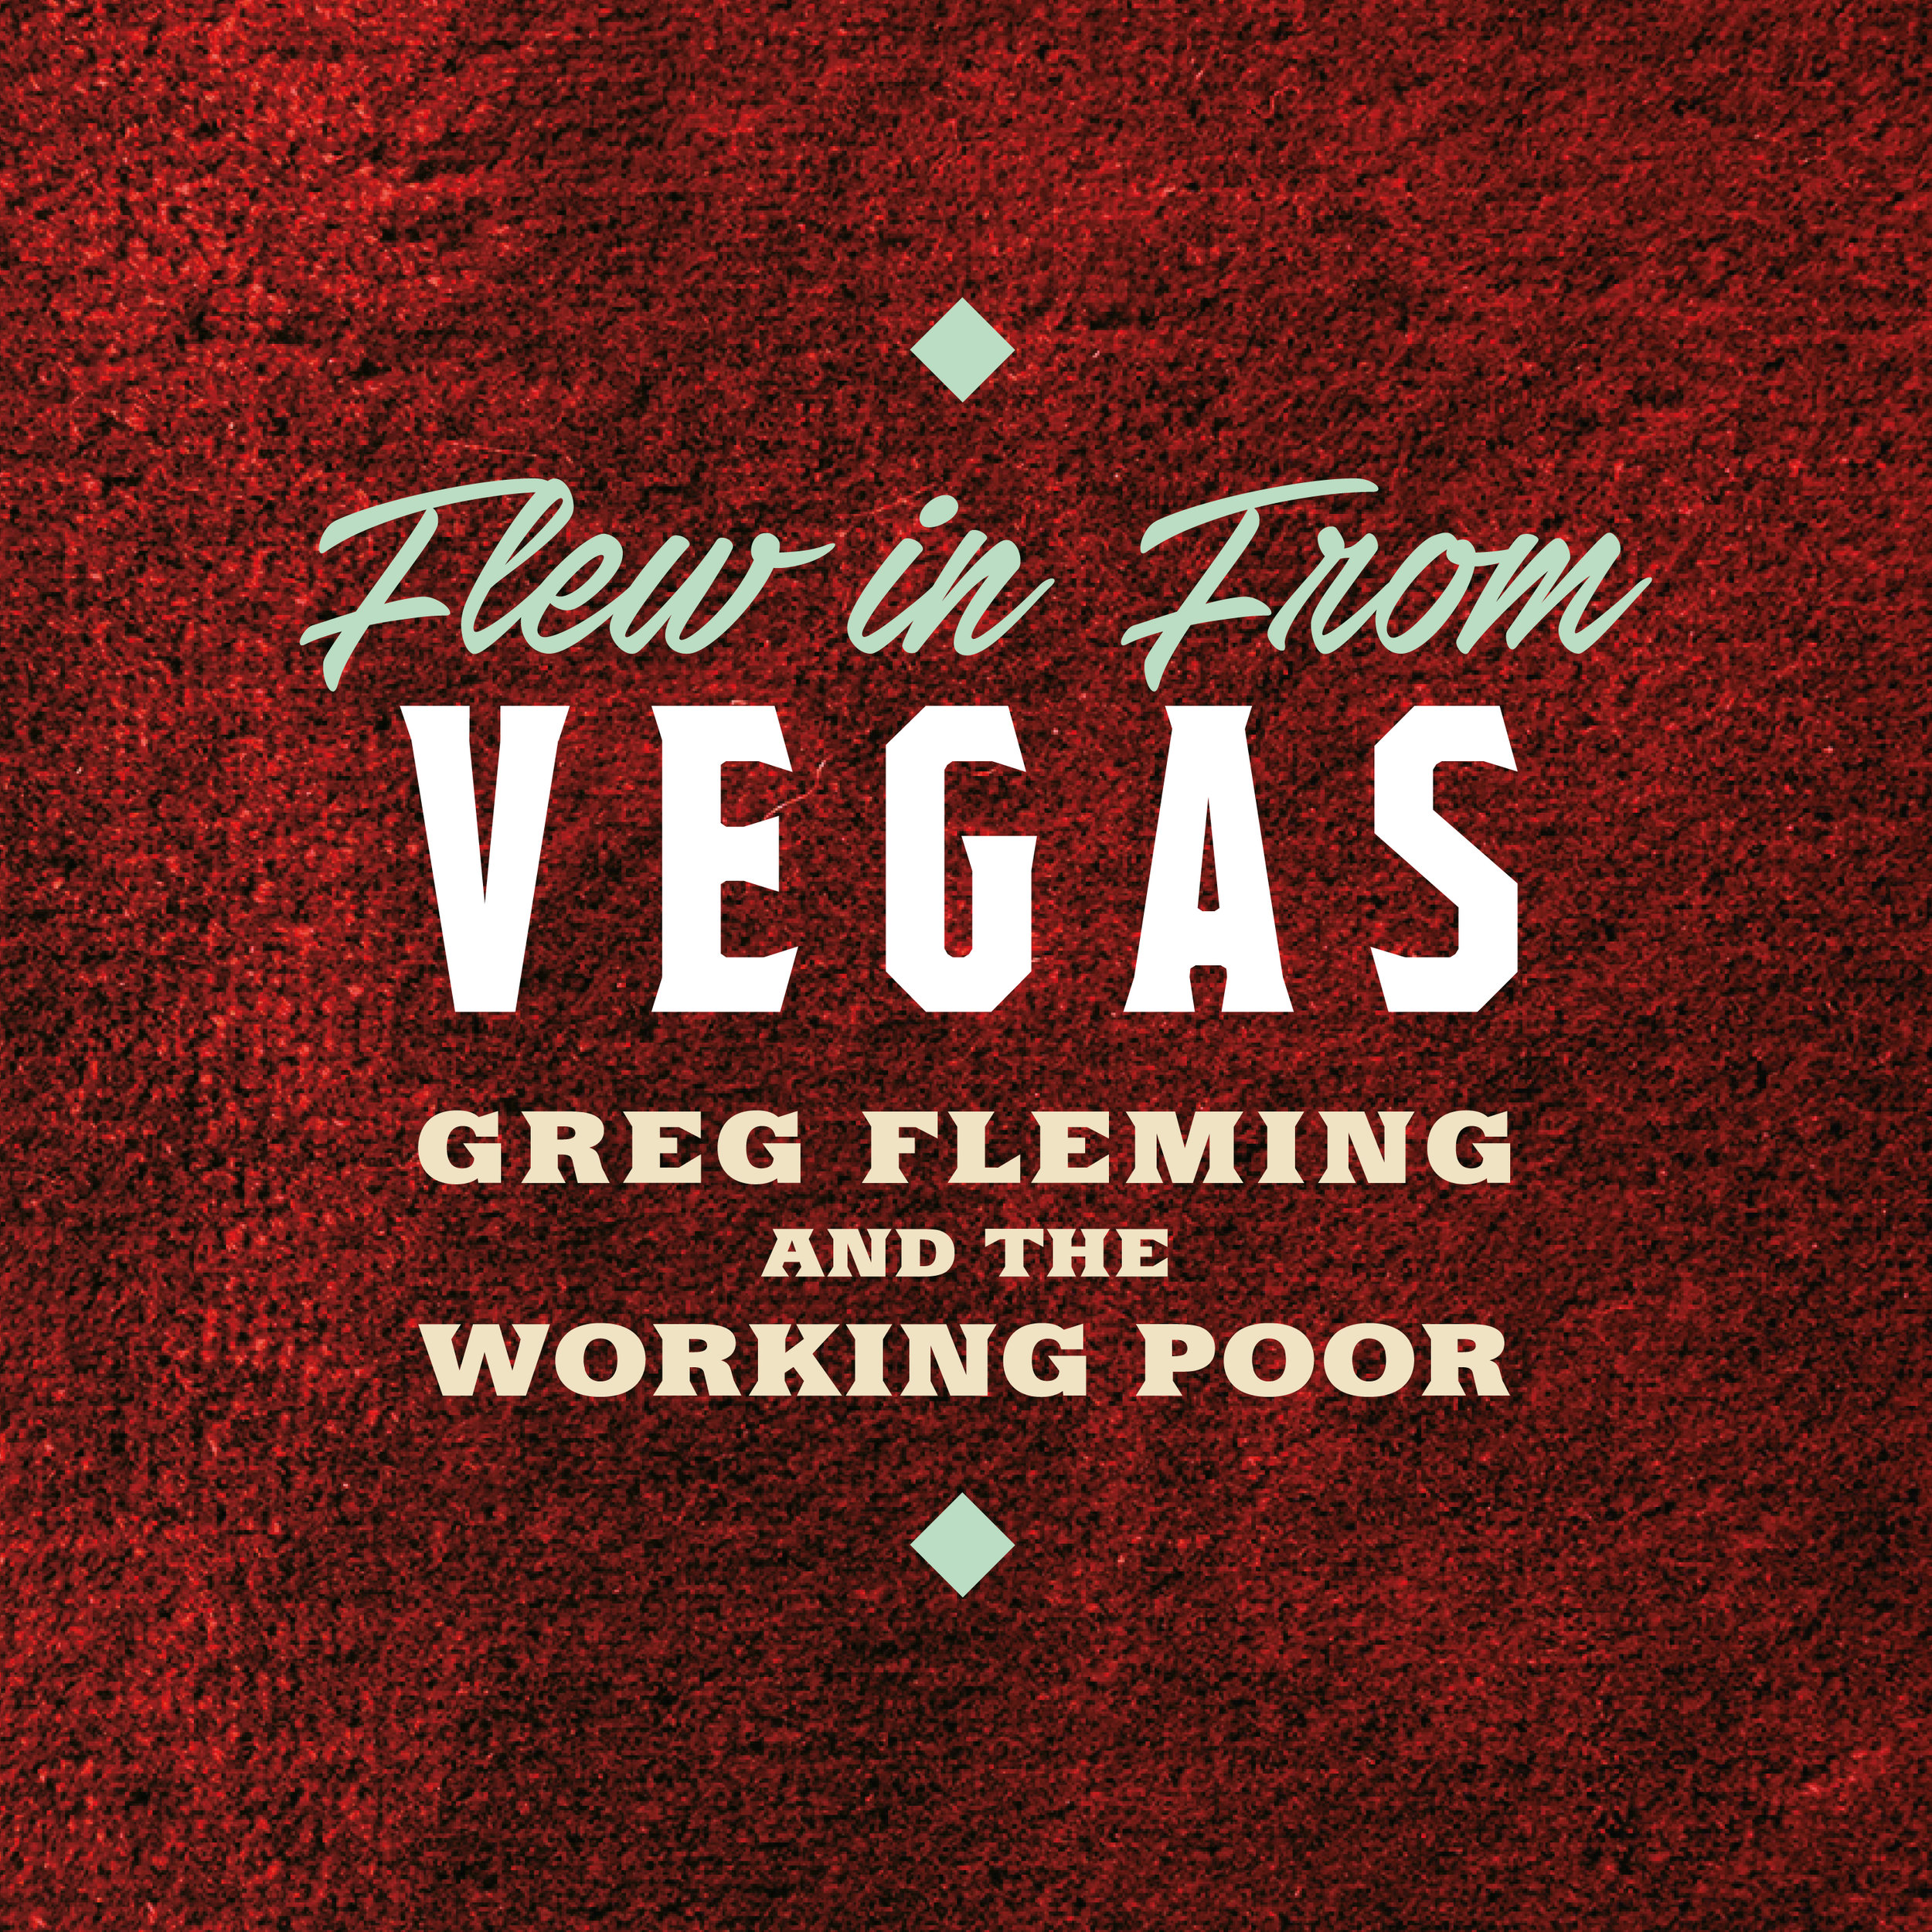 Greg Fleming and the Working Poor - Flew In From Vegas Single